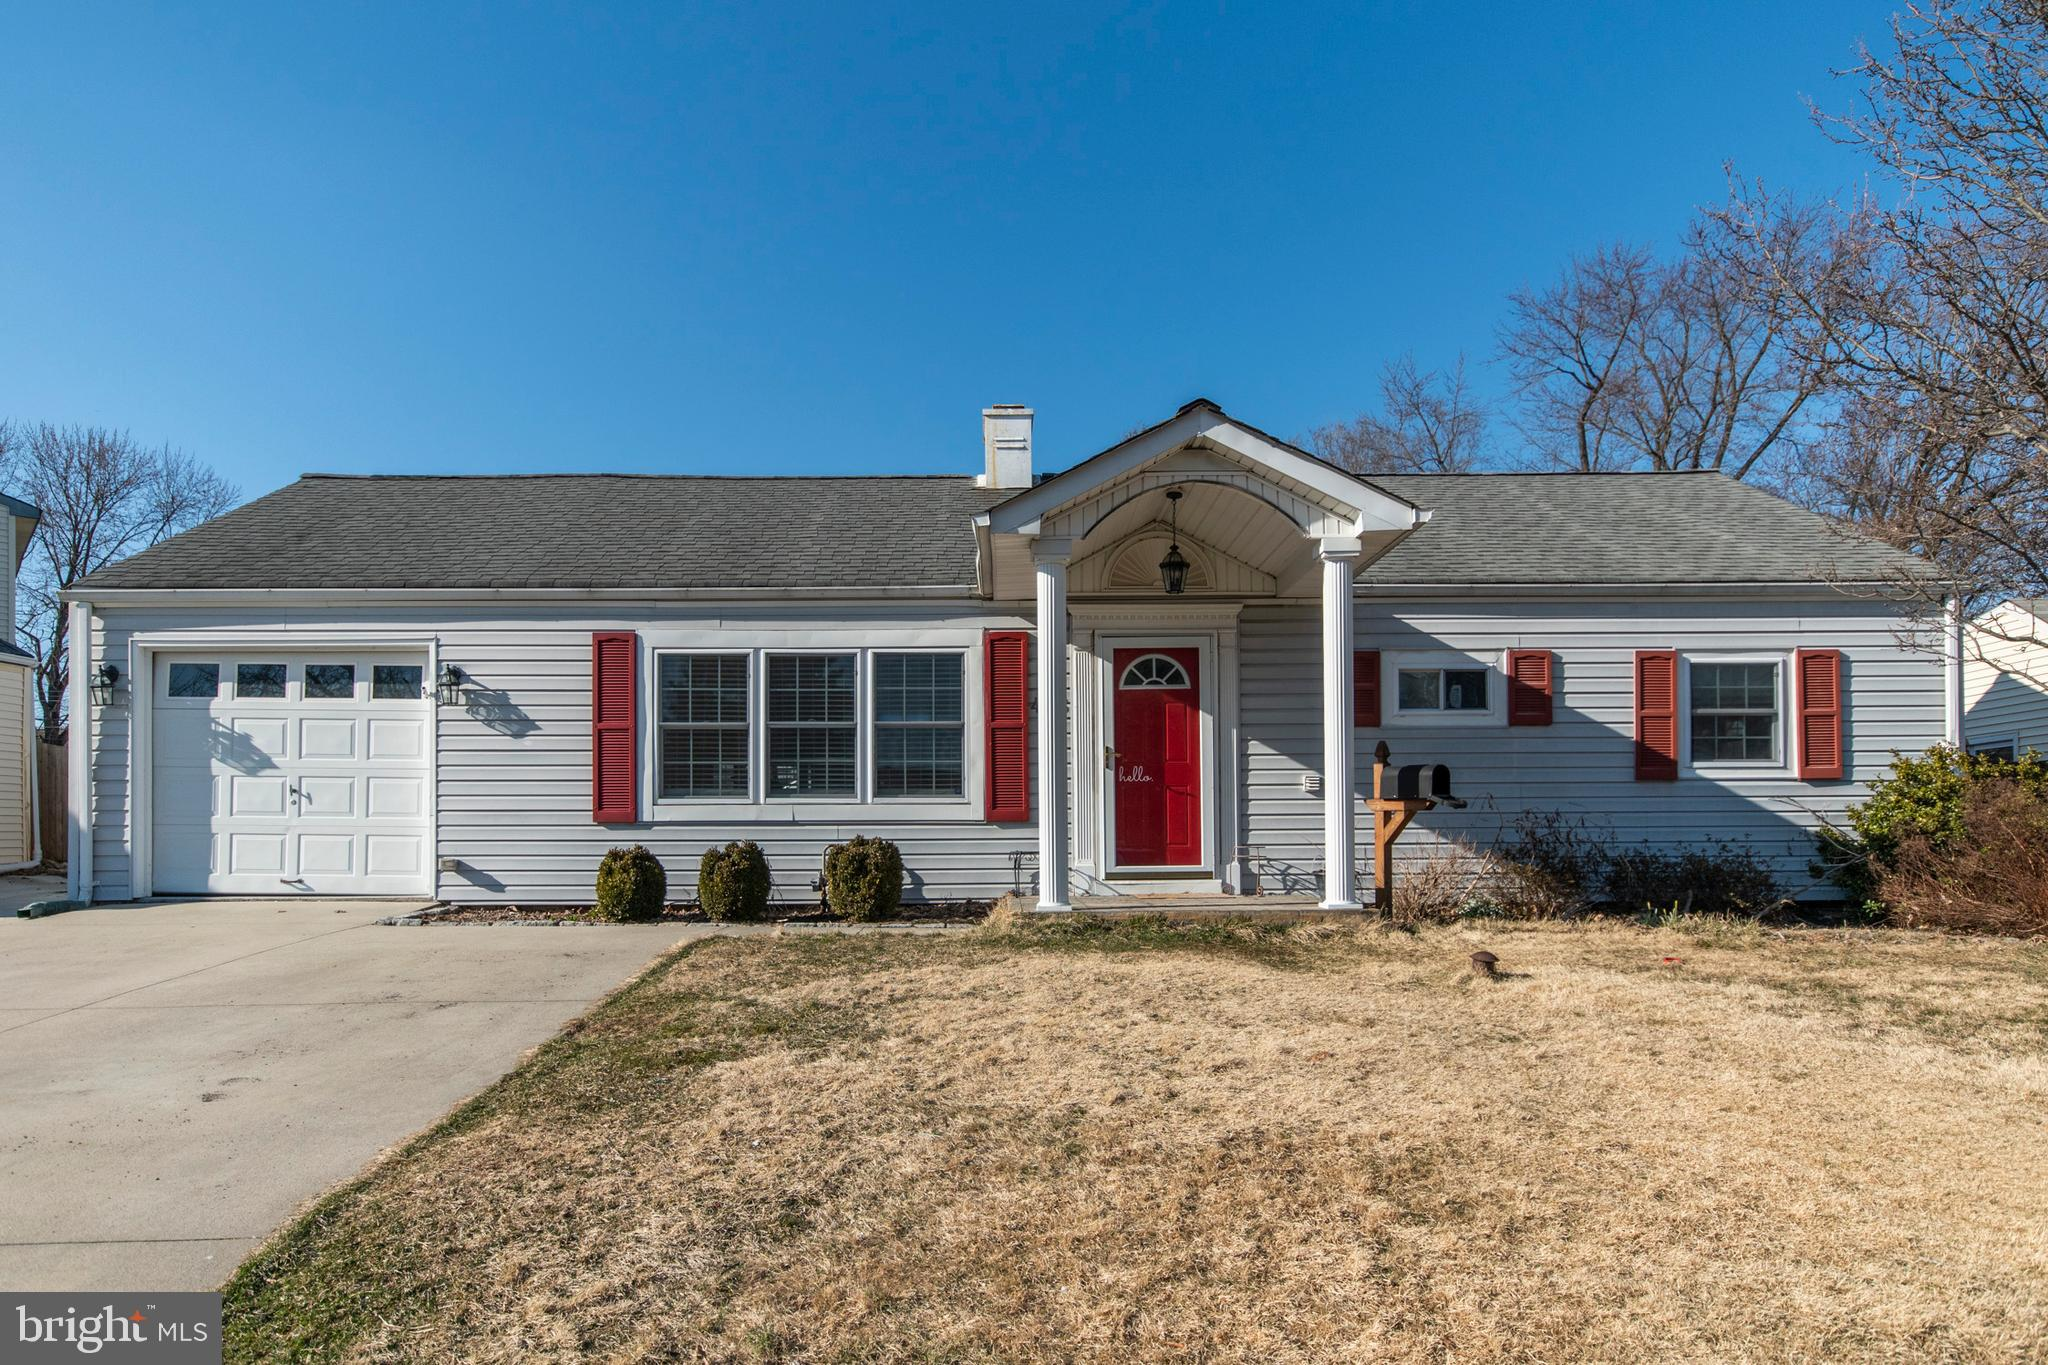 435 ANDOVER ROAD, FAIRLESS HILLS, PA 19030